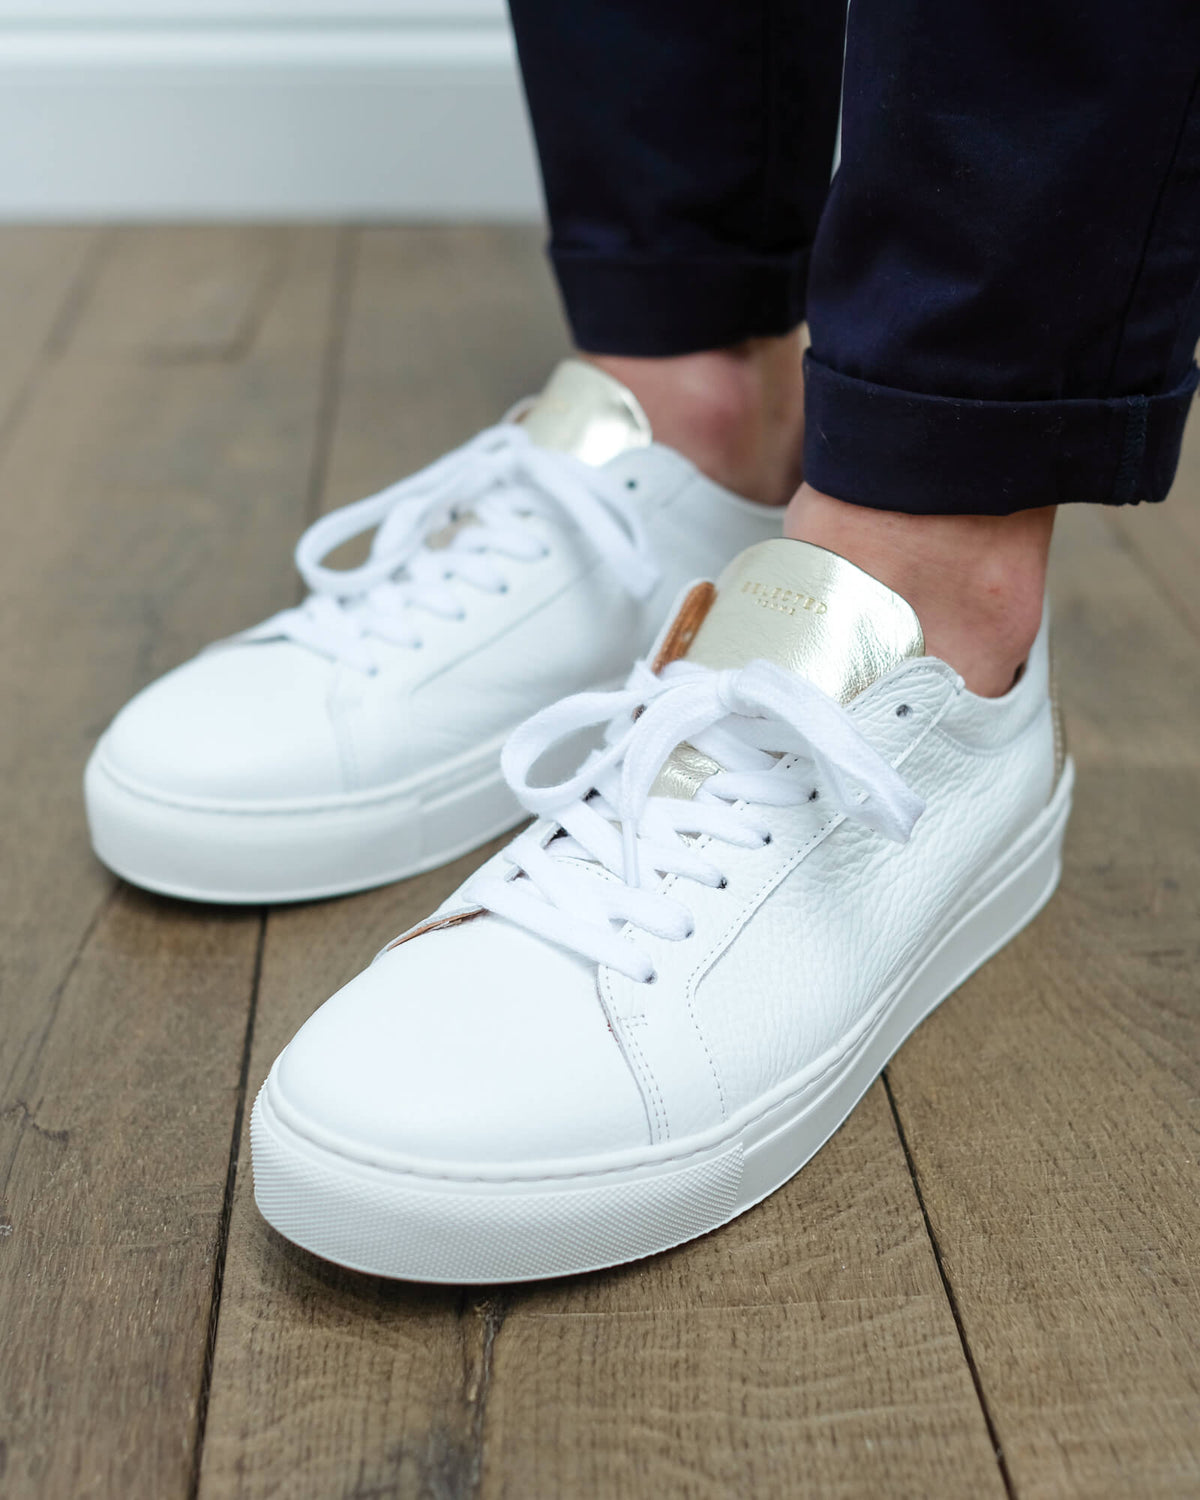 SLF Donna leather sneaker in white and gold